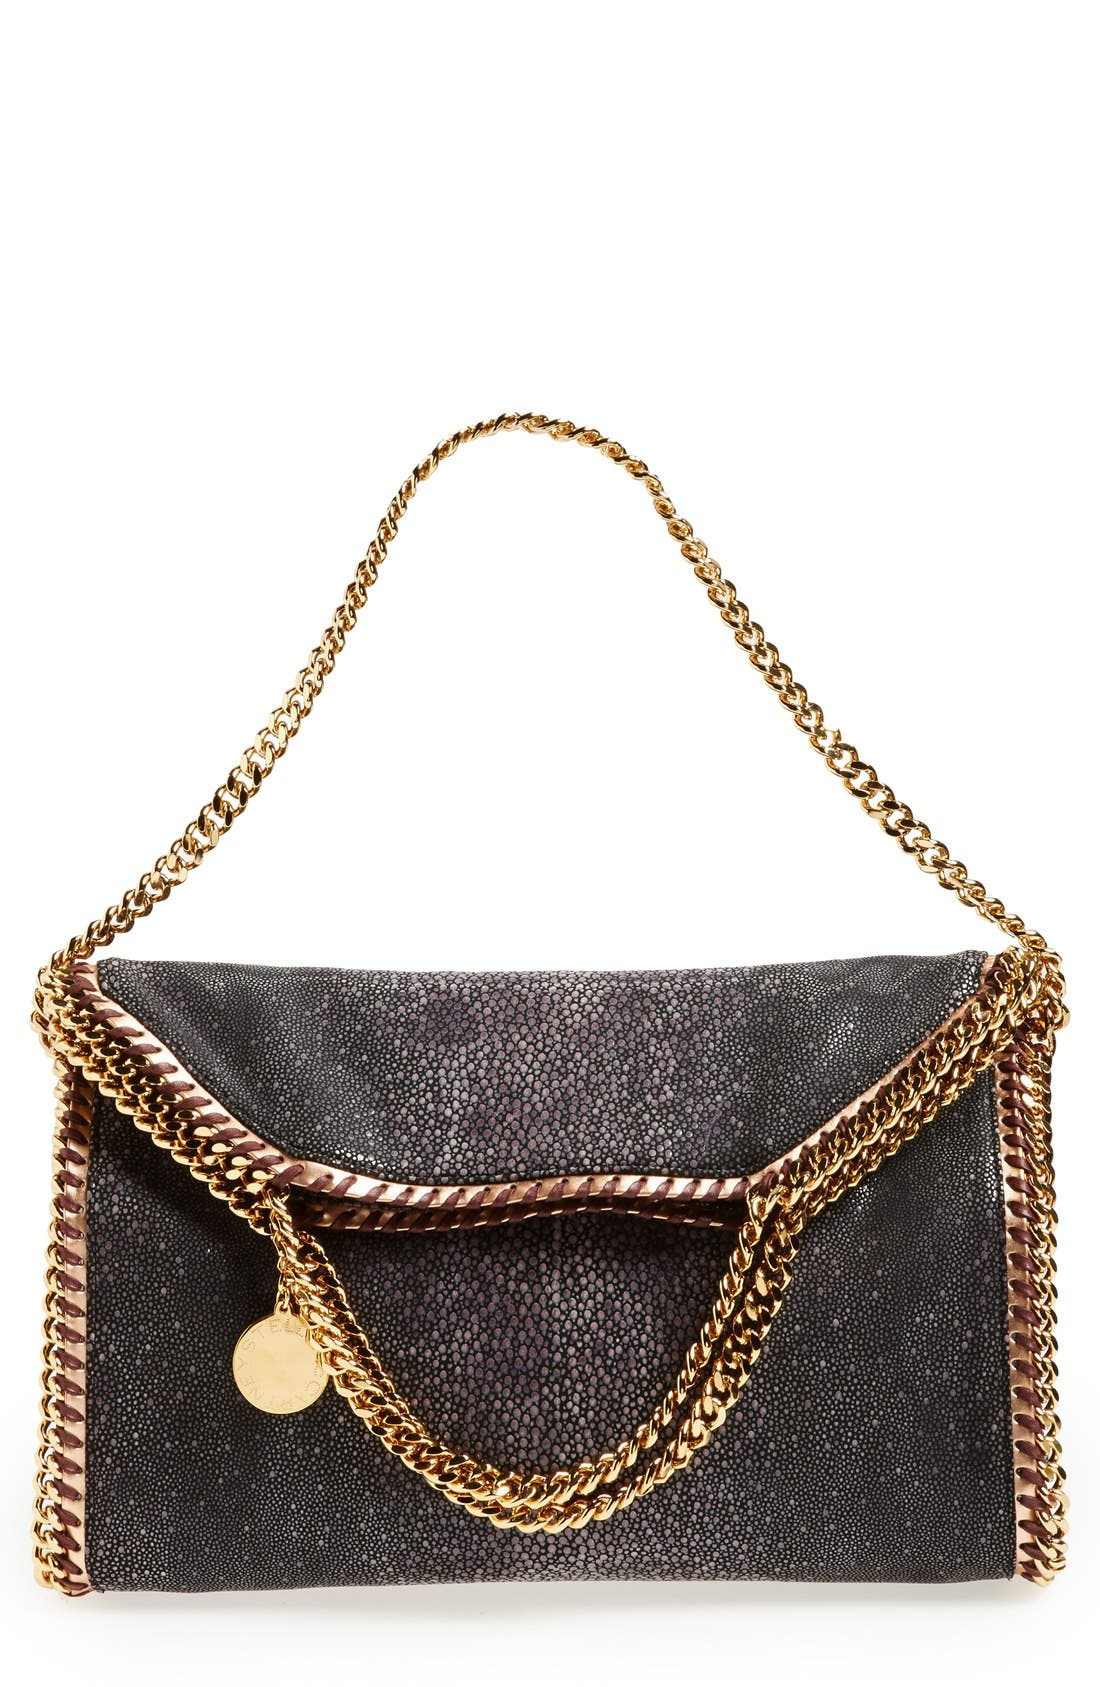 Alternate Image 1 Selected - Stella McCartney 'Falabella' Foldover Tote